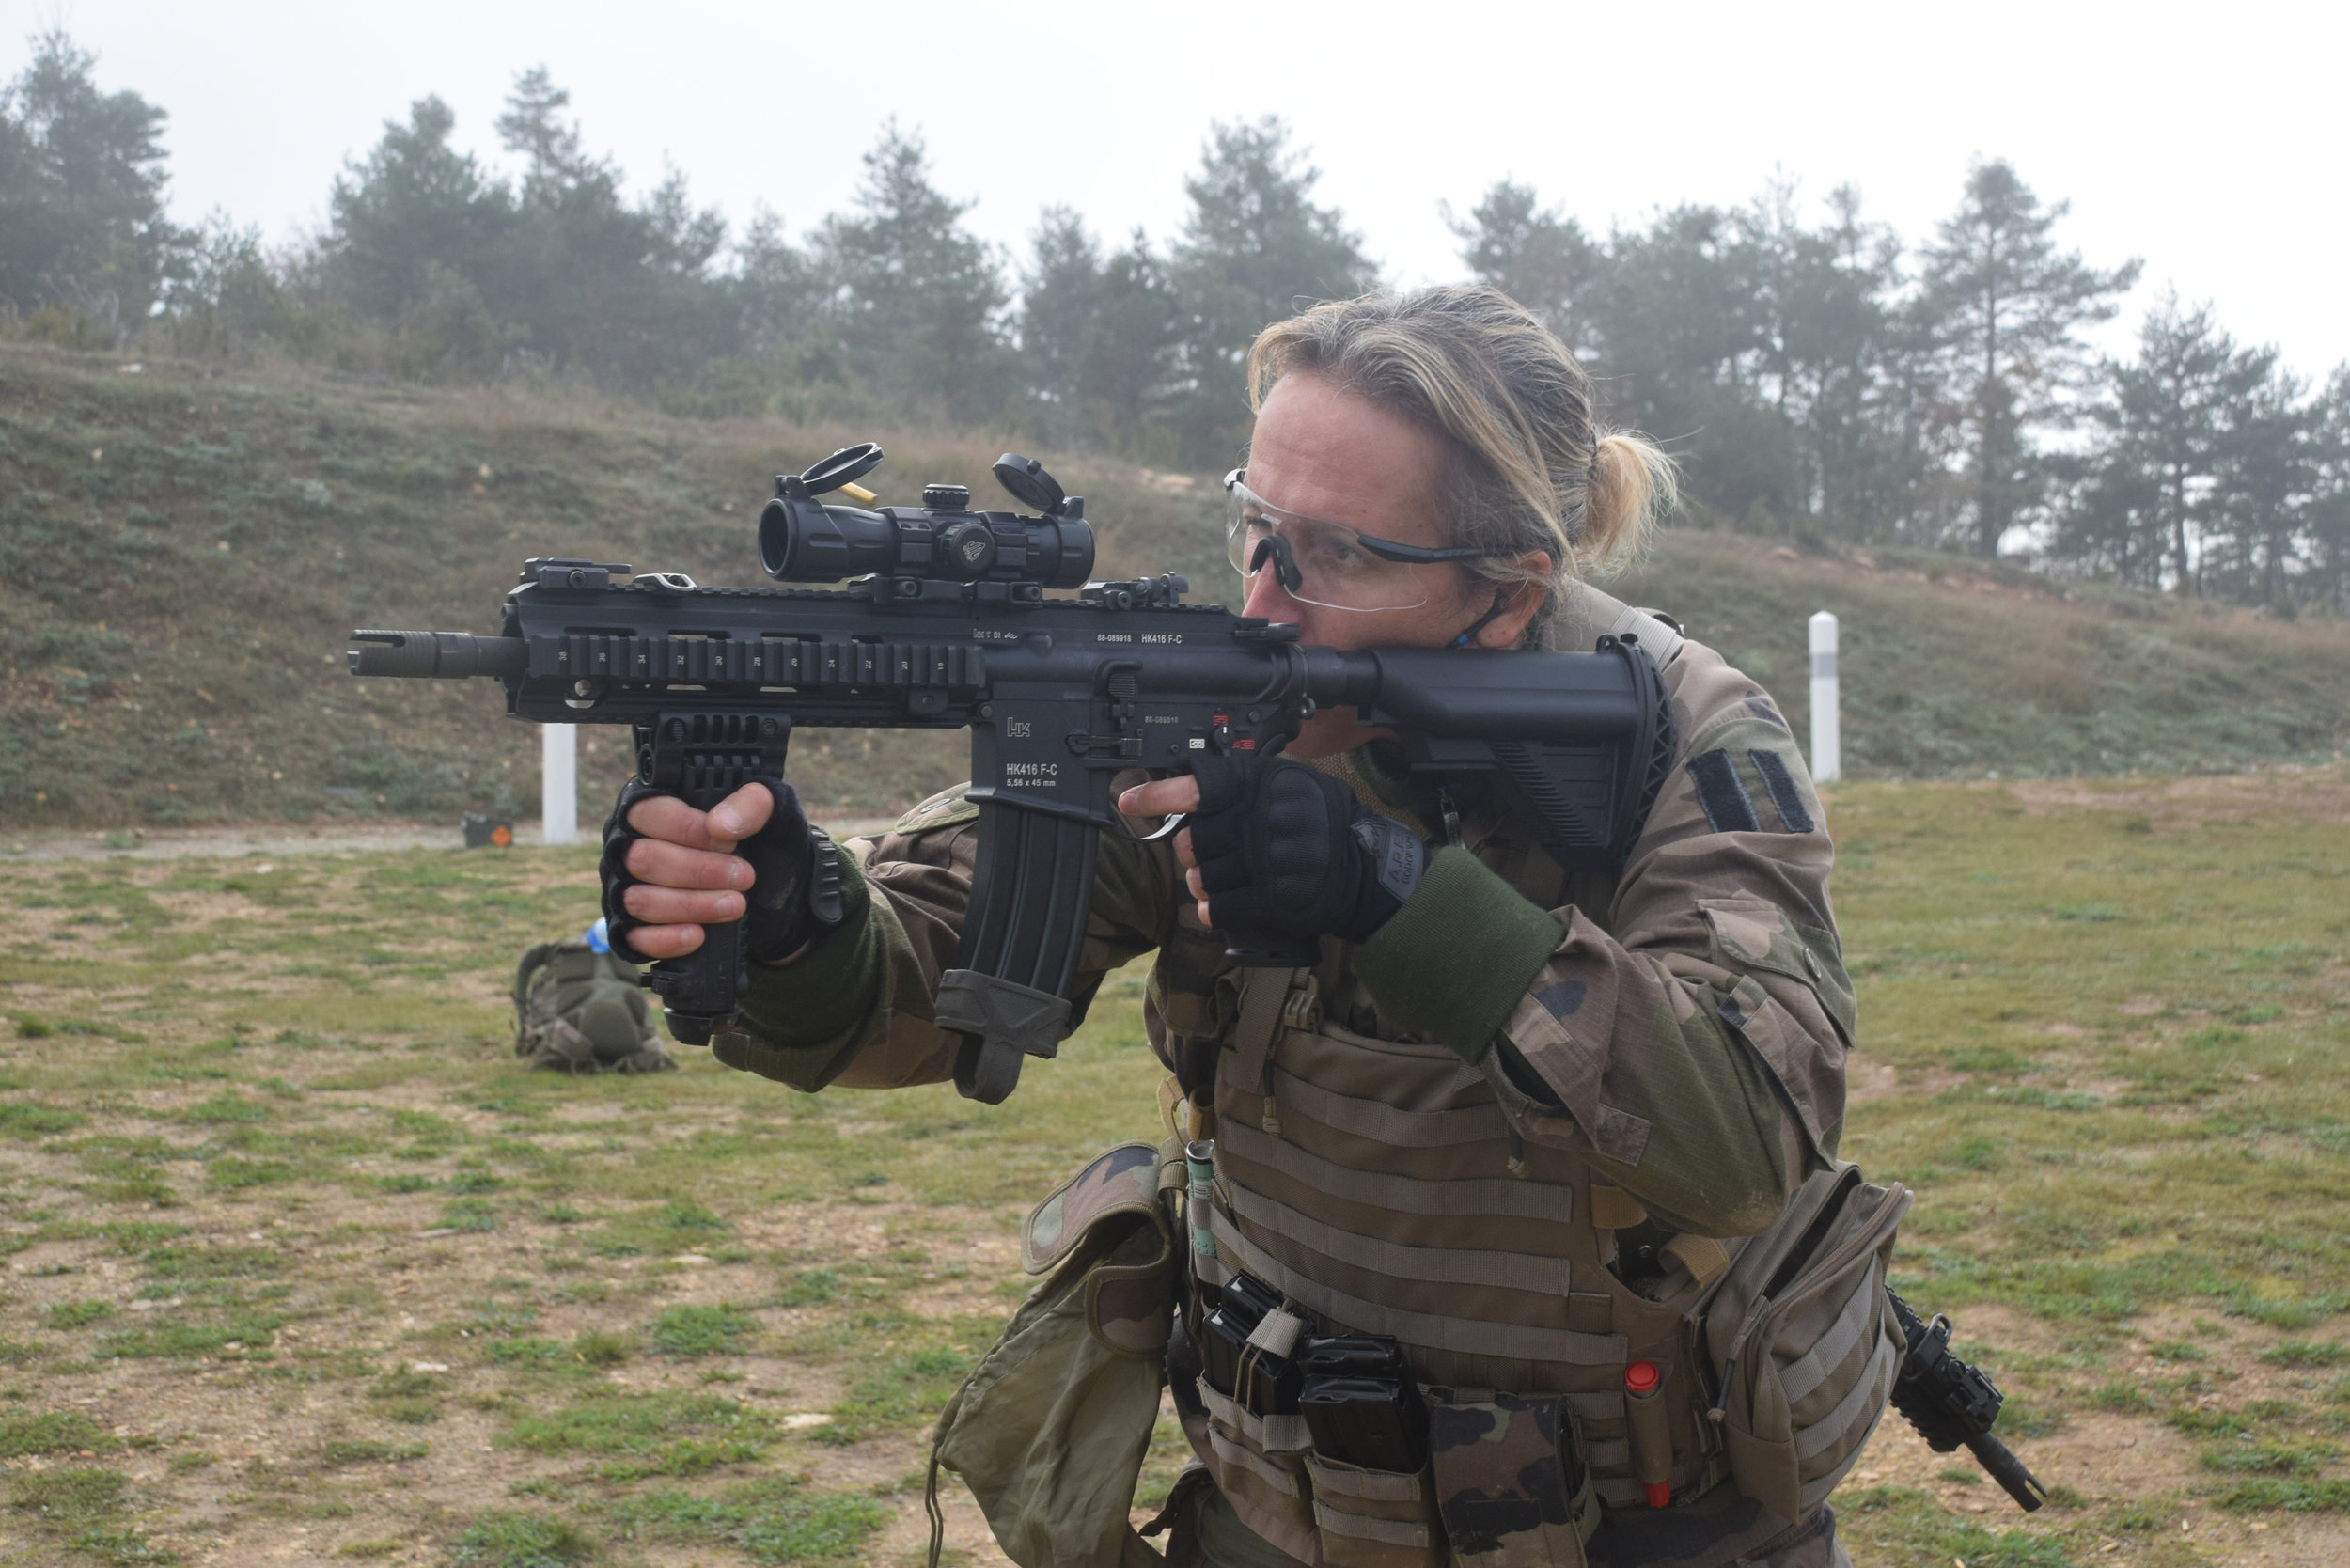 Erika with the HK416. Photo credit: Ministry of the Armed Forces